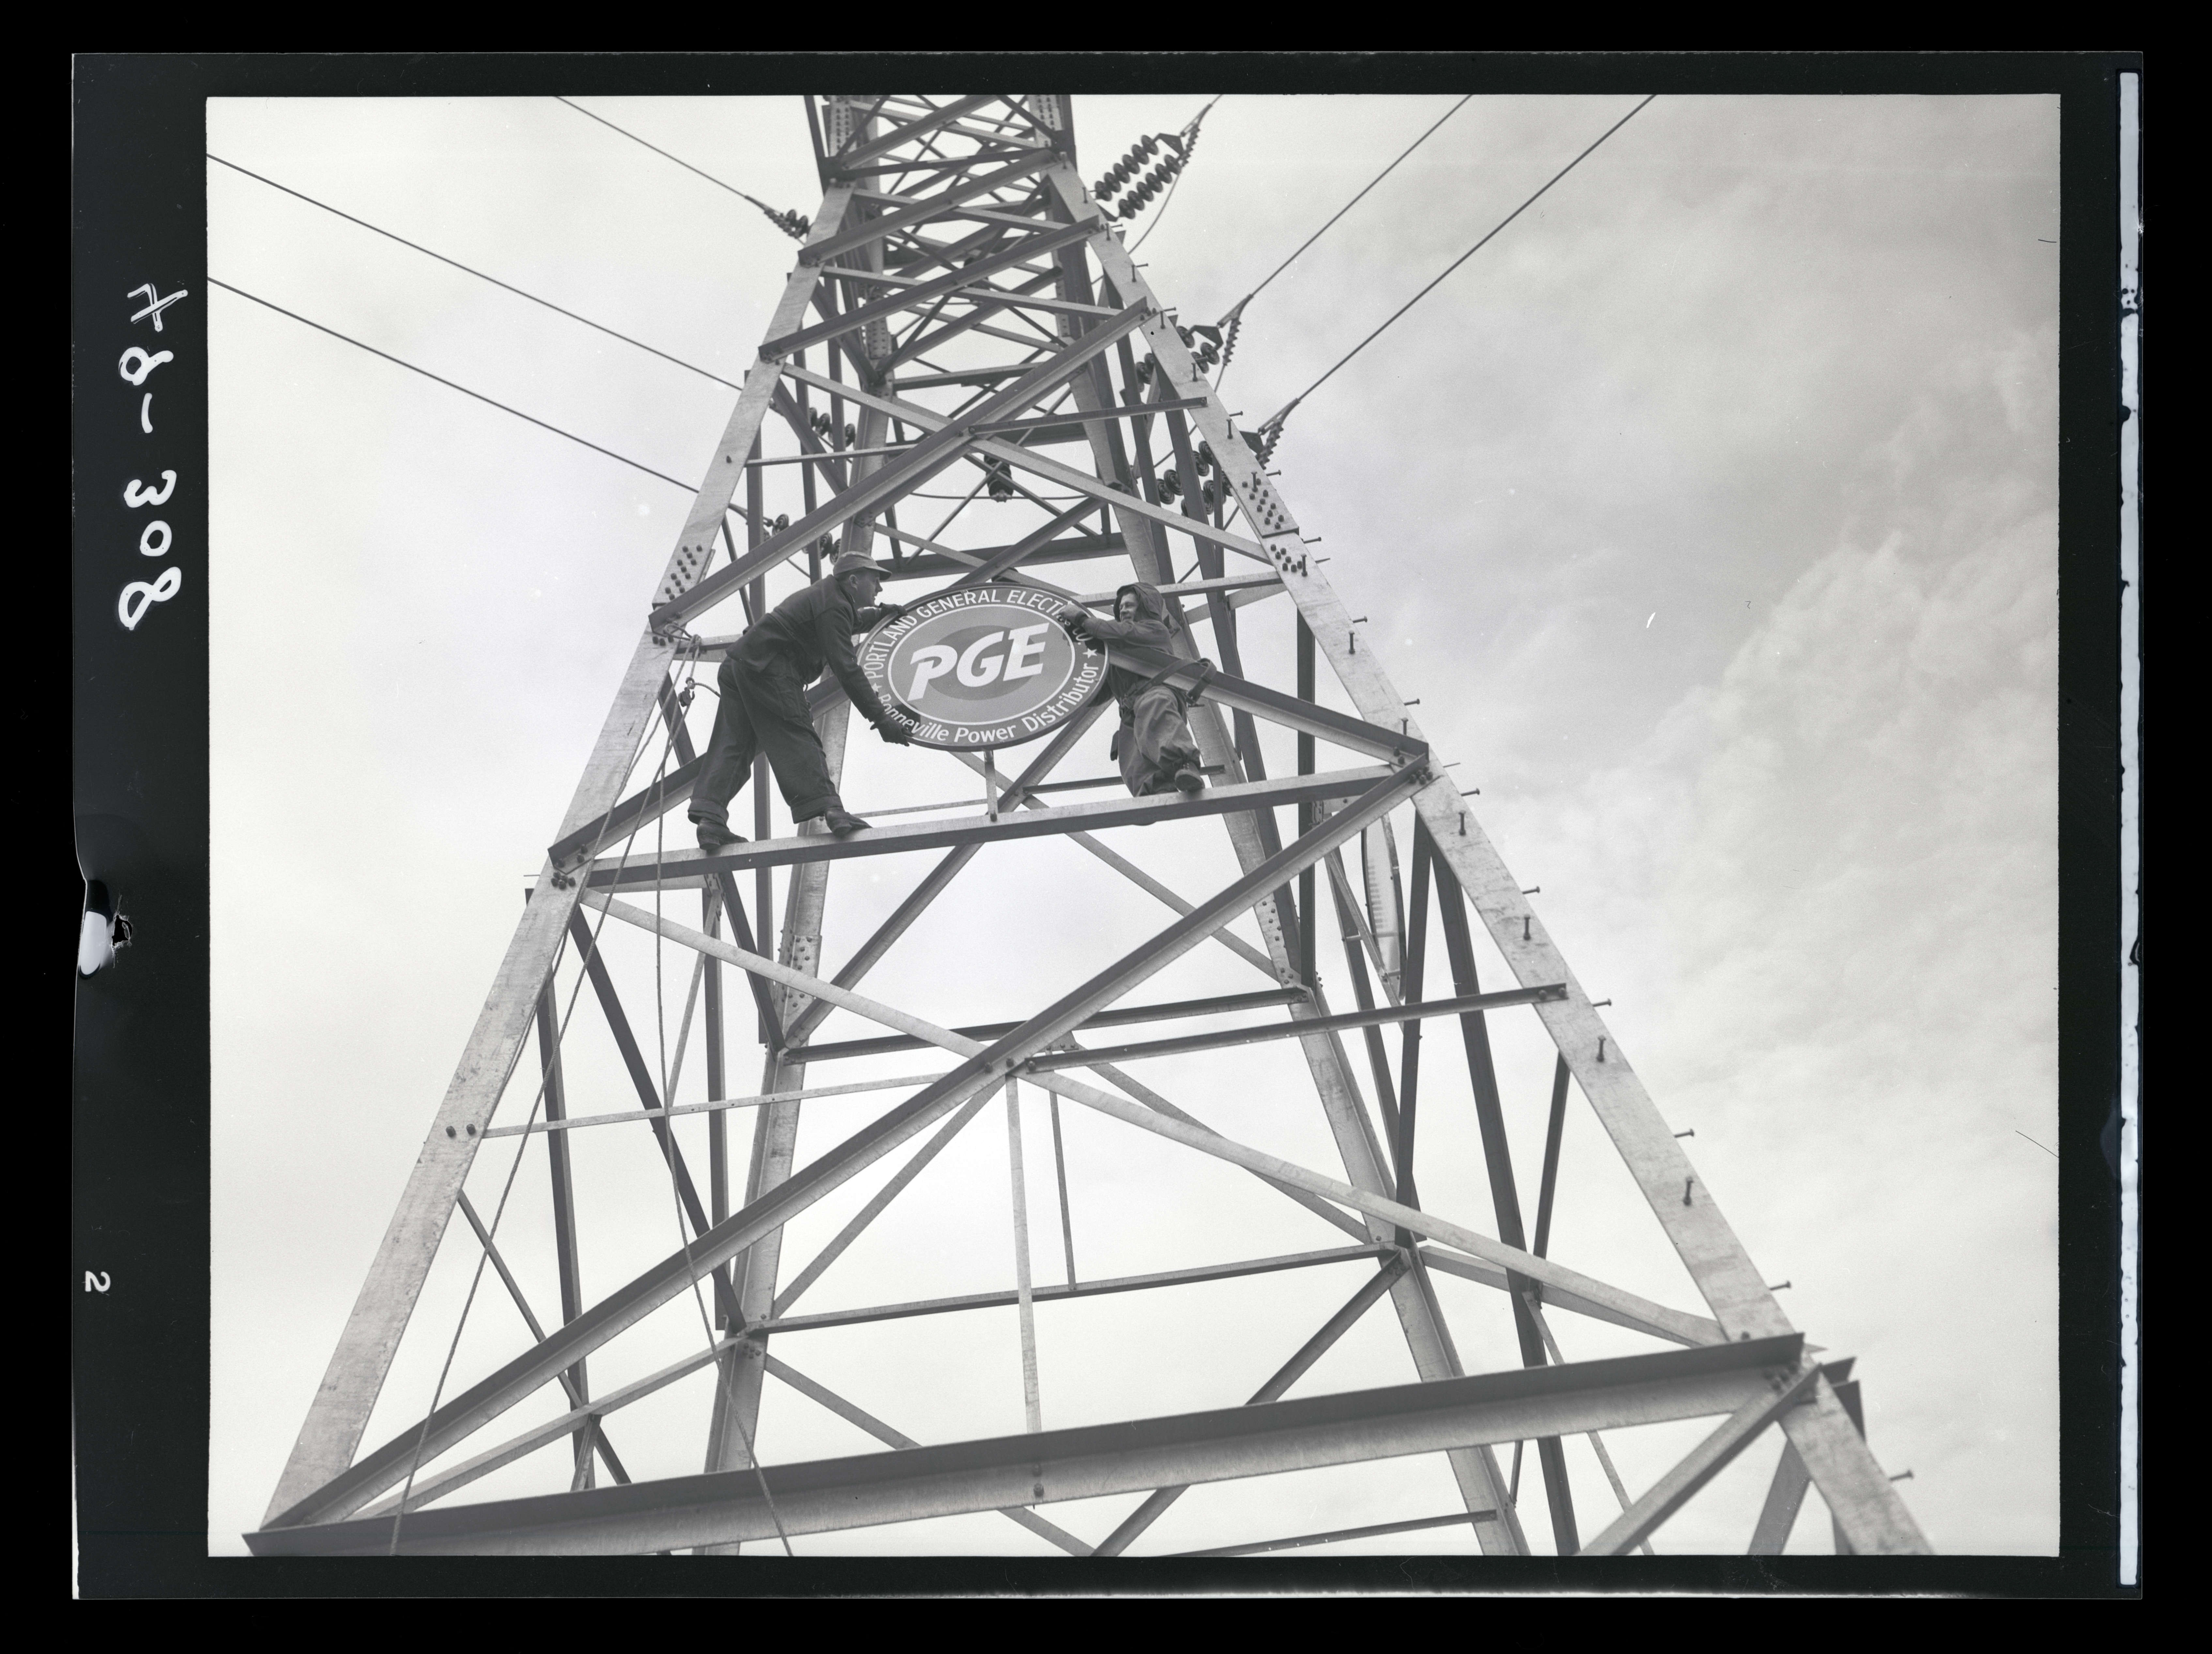 Men With Portland General Electric Sign On Transmission Tower Ohs Digital Collections